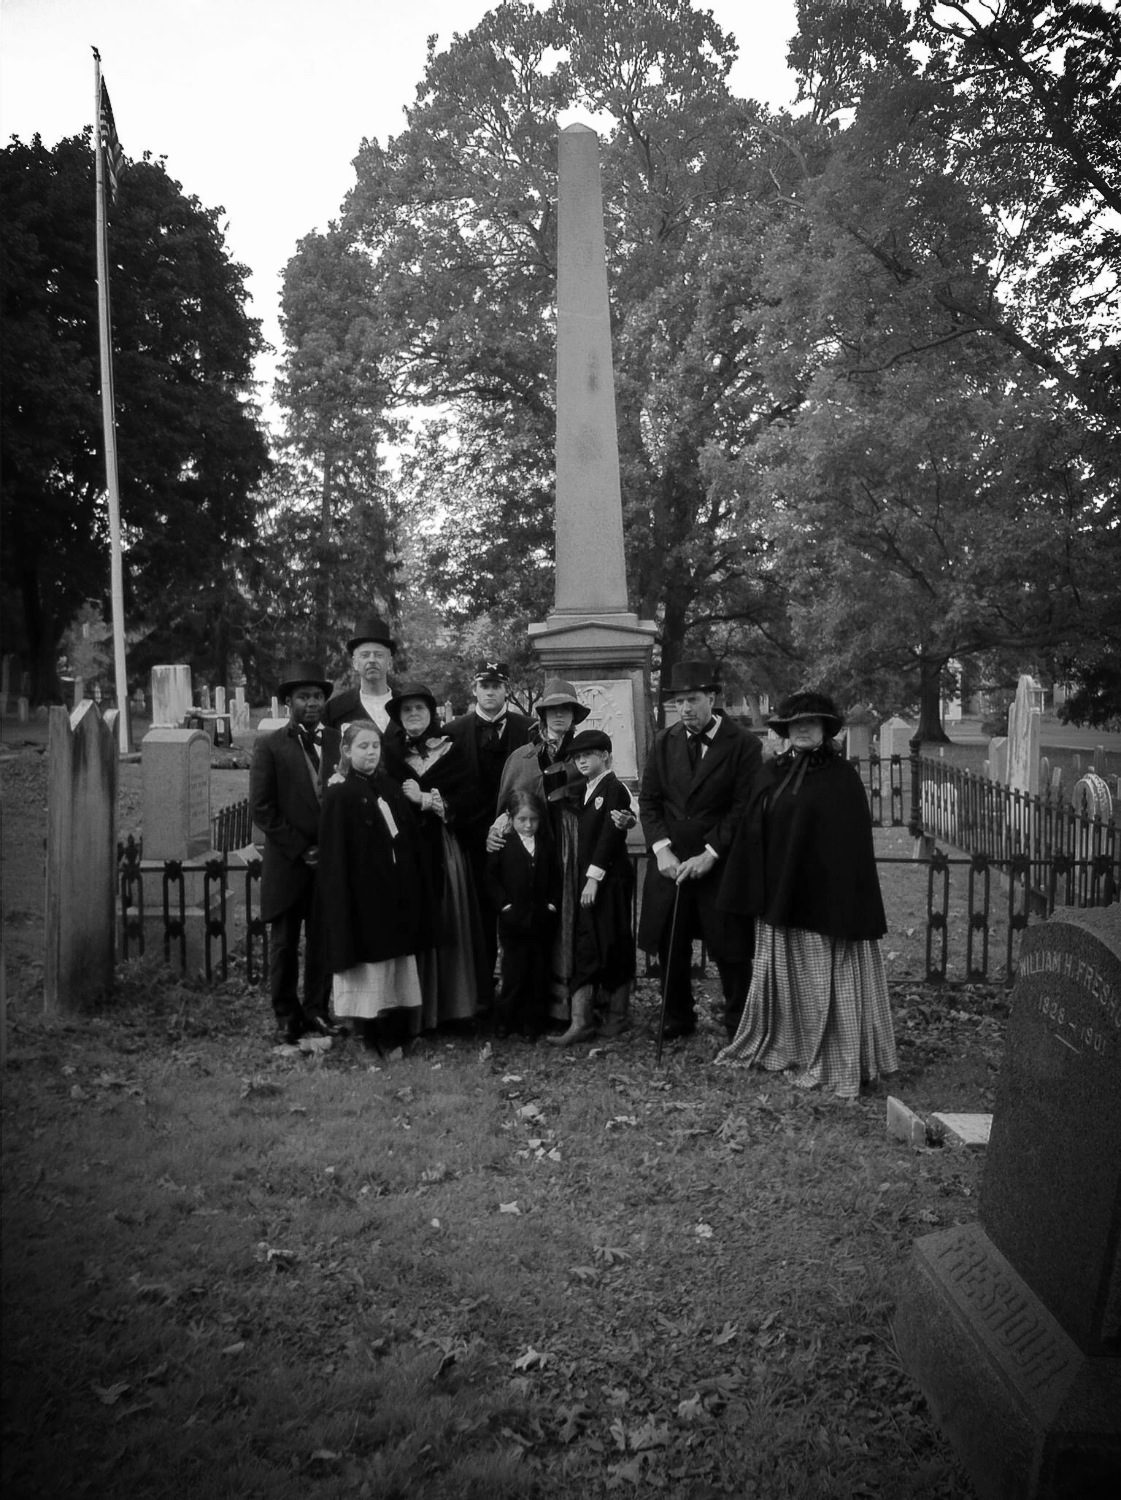 From Beyond: Washington St. Cemetery Stories